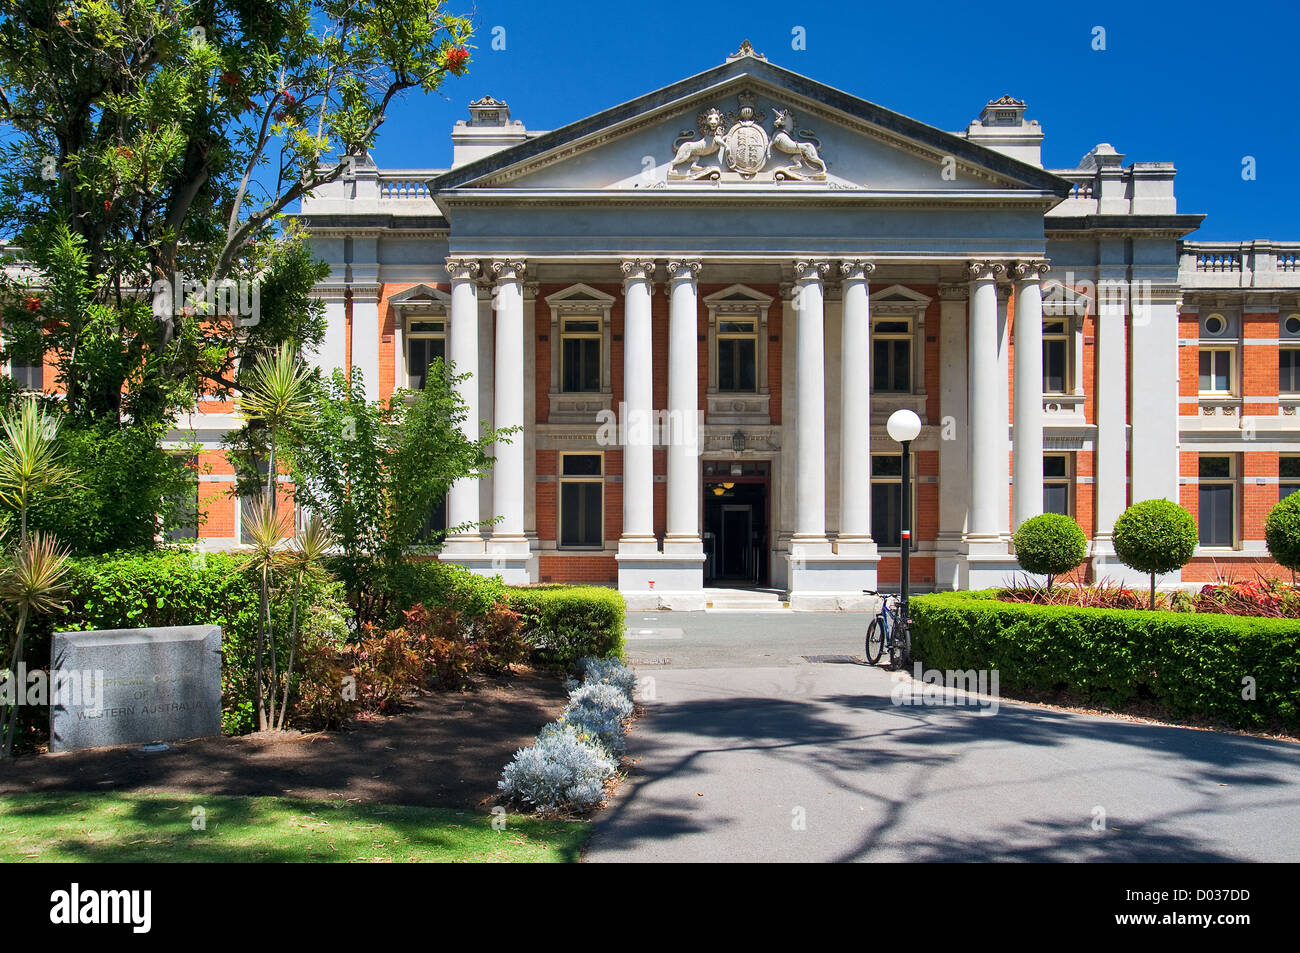 Perth Supreme Court. - Stock Image